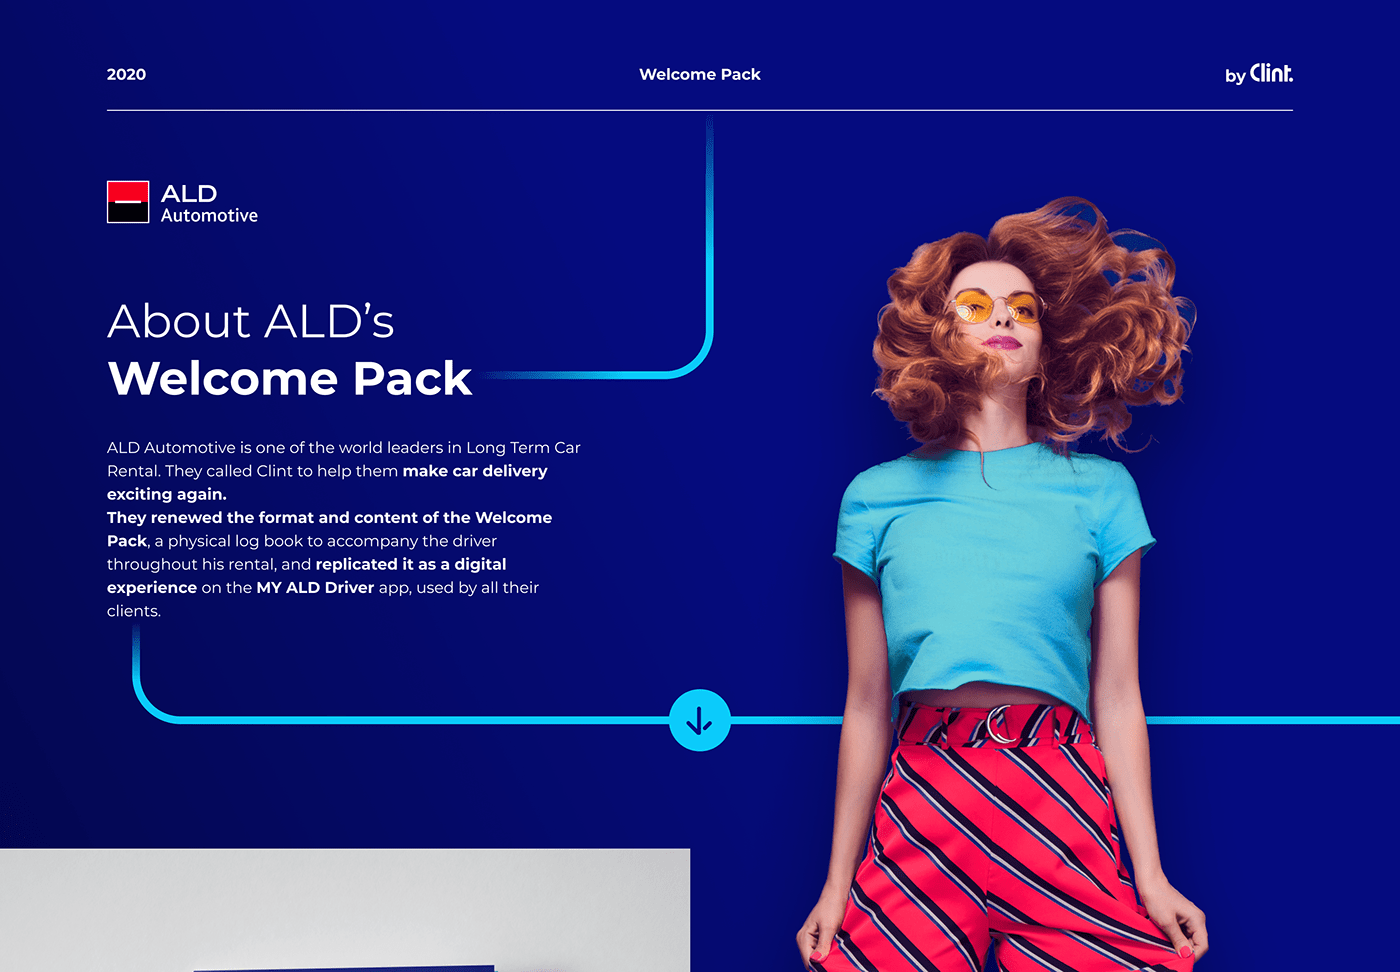 ald car LLD location Mobile app print welcome pack